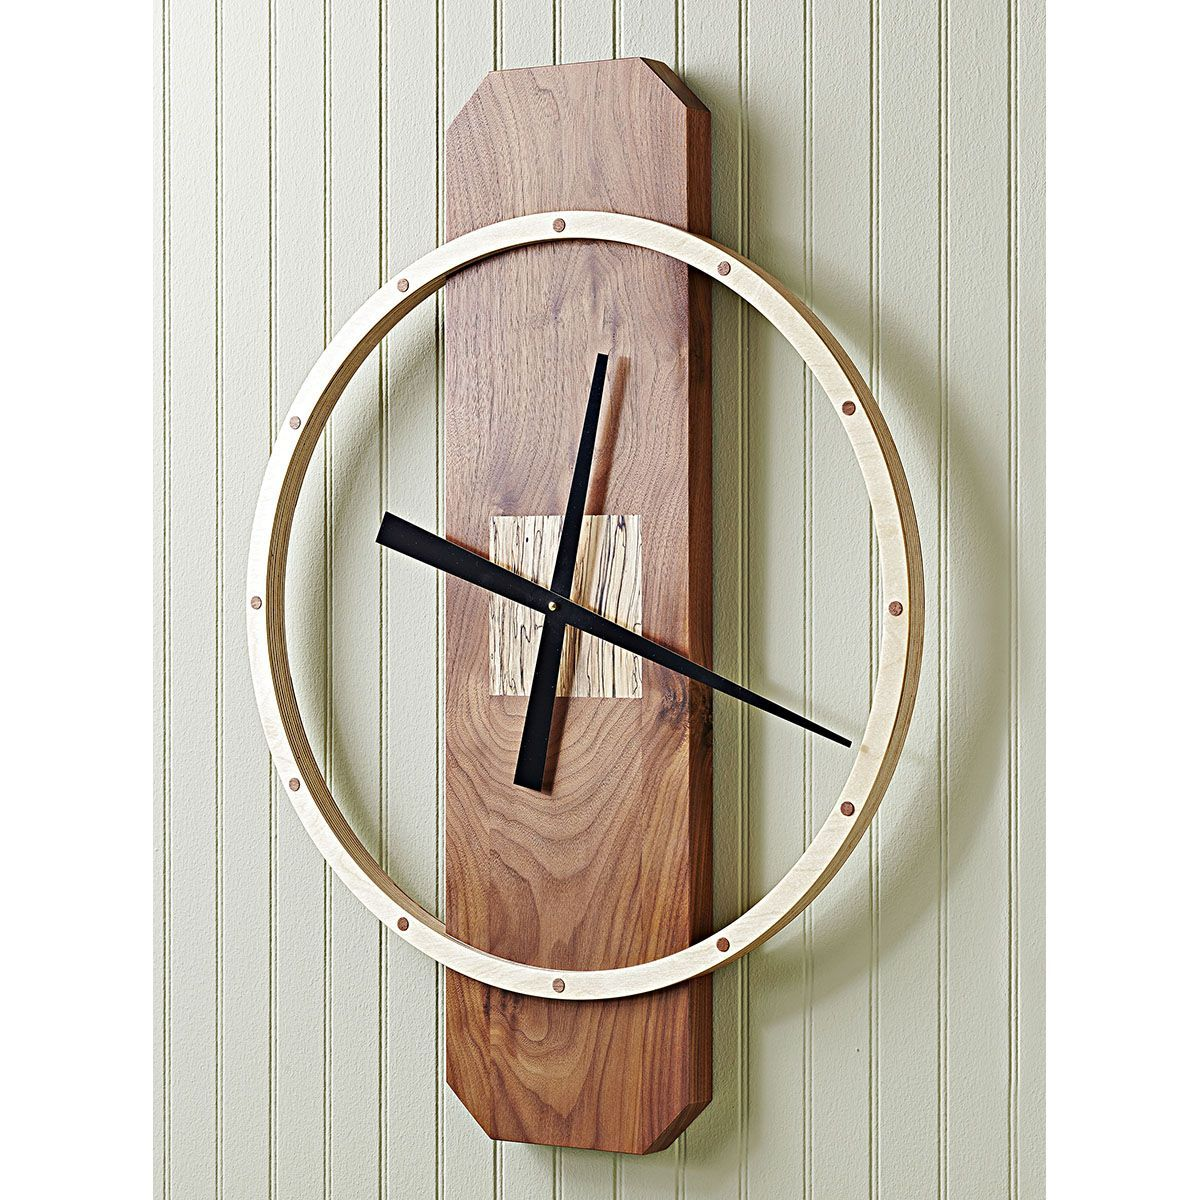 Big Time Wall Clock Woodworking Plan Build This 30 Tall